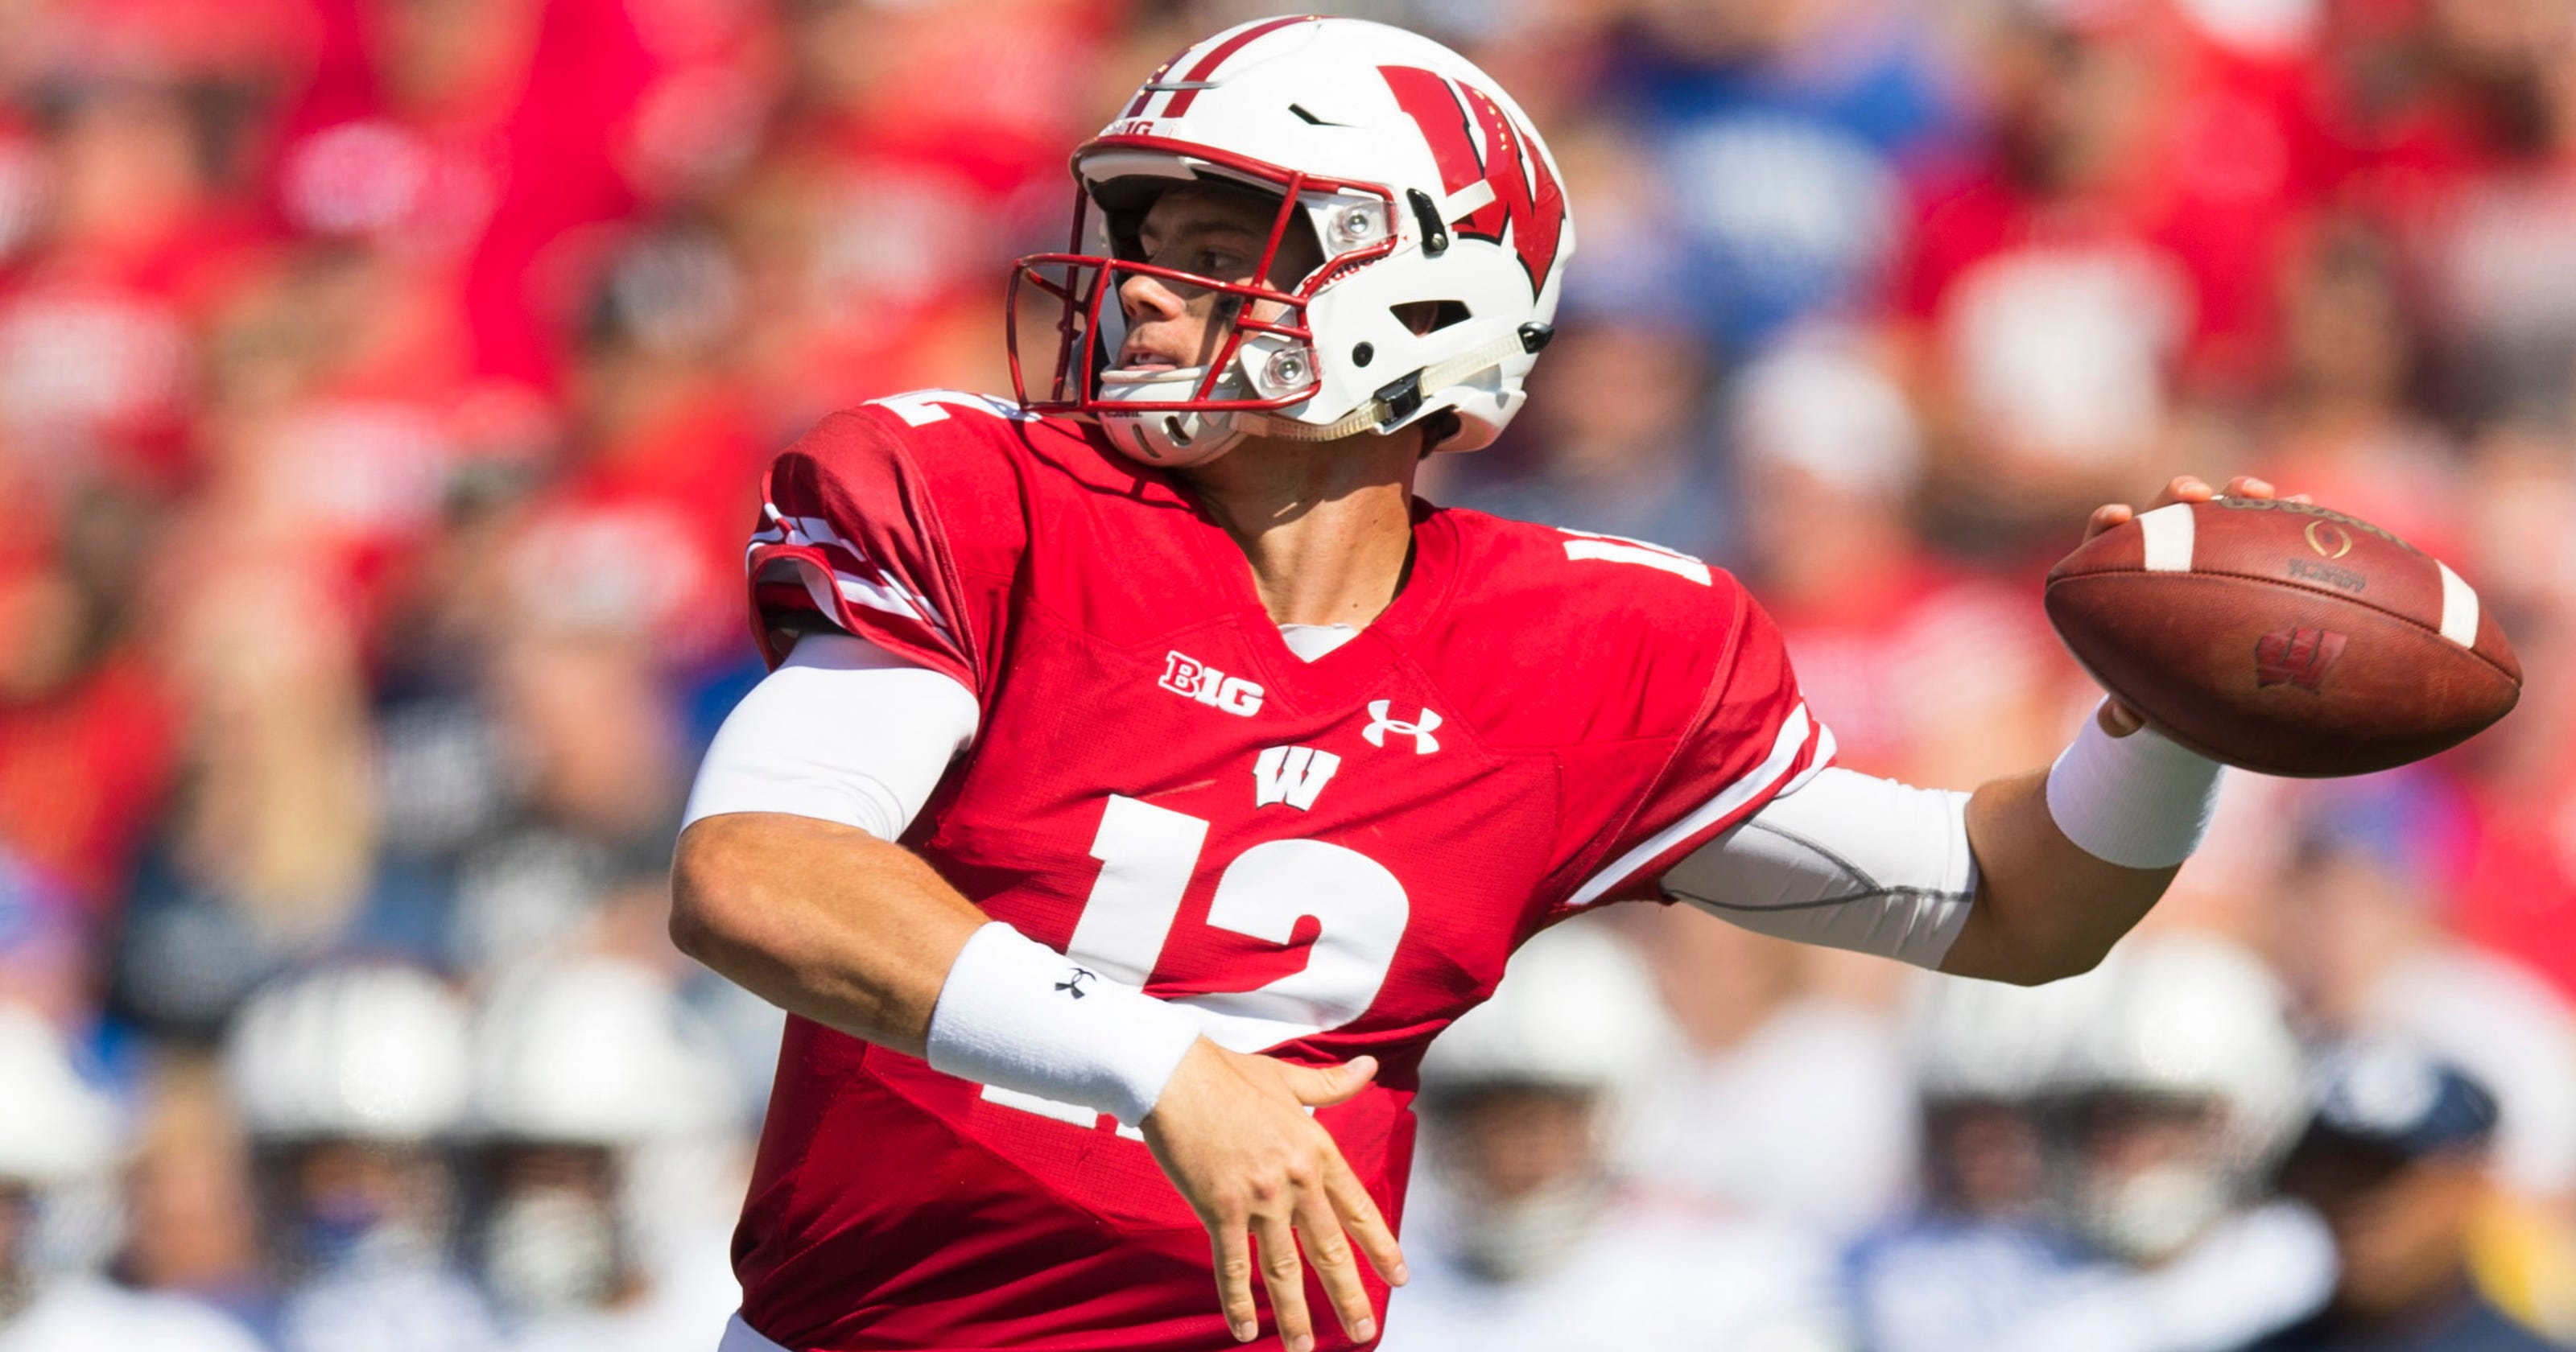 newest 74a80 0f9c6 Alex Hornibrook not expected to be cleared for Northwestern game